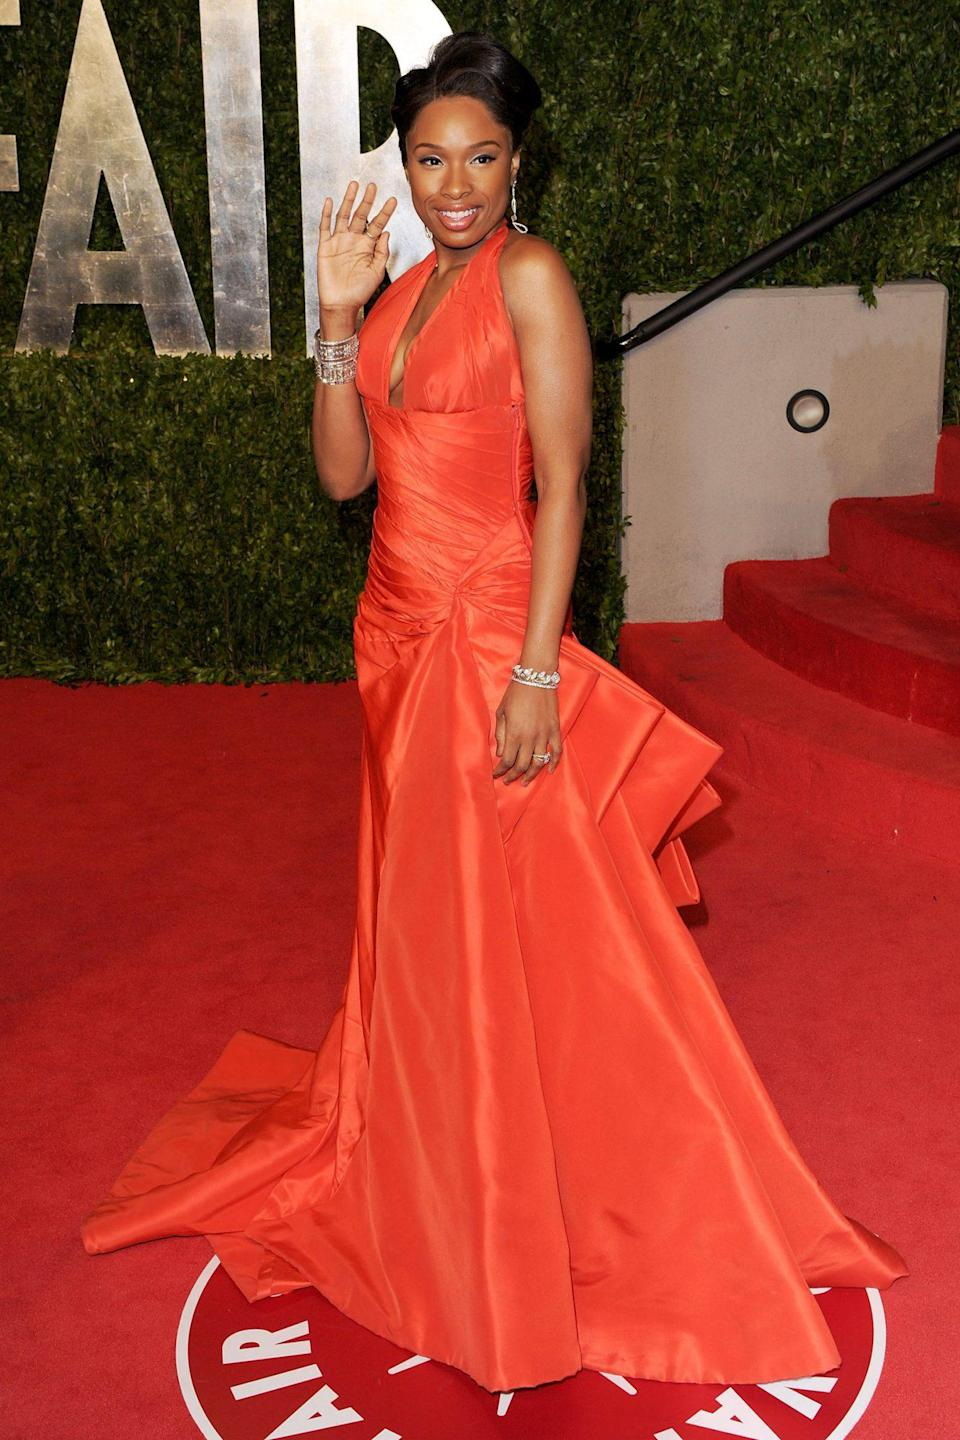 <p>In 2011, Jennifer Hudson looked stunning in a bright orange Atelier Versace halter number. The Academy Award winner was there as a presenter. </p>